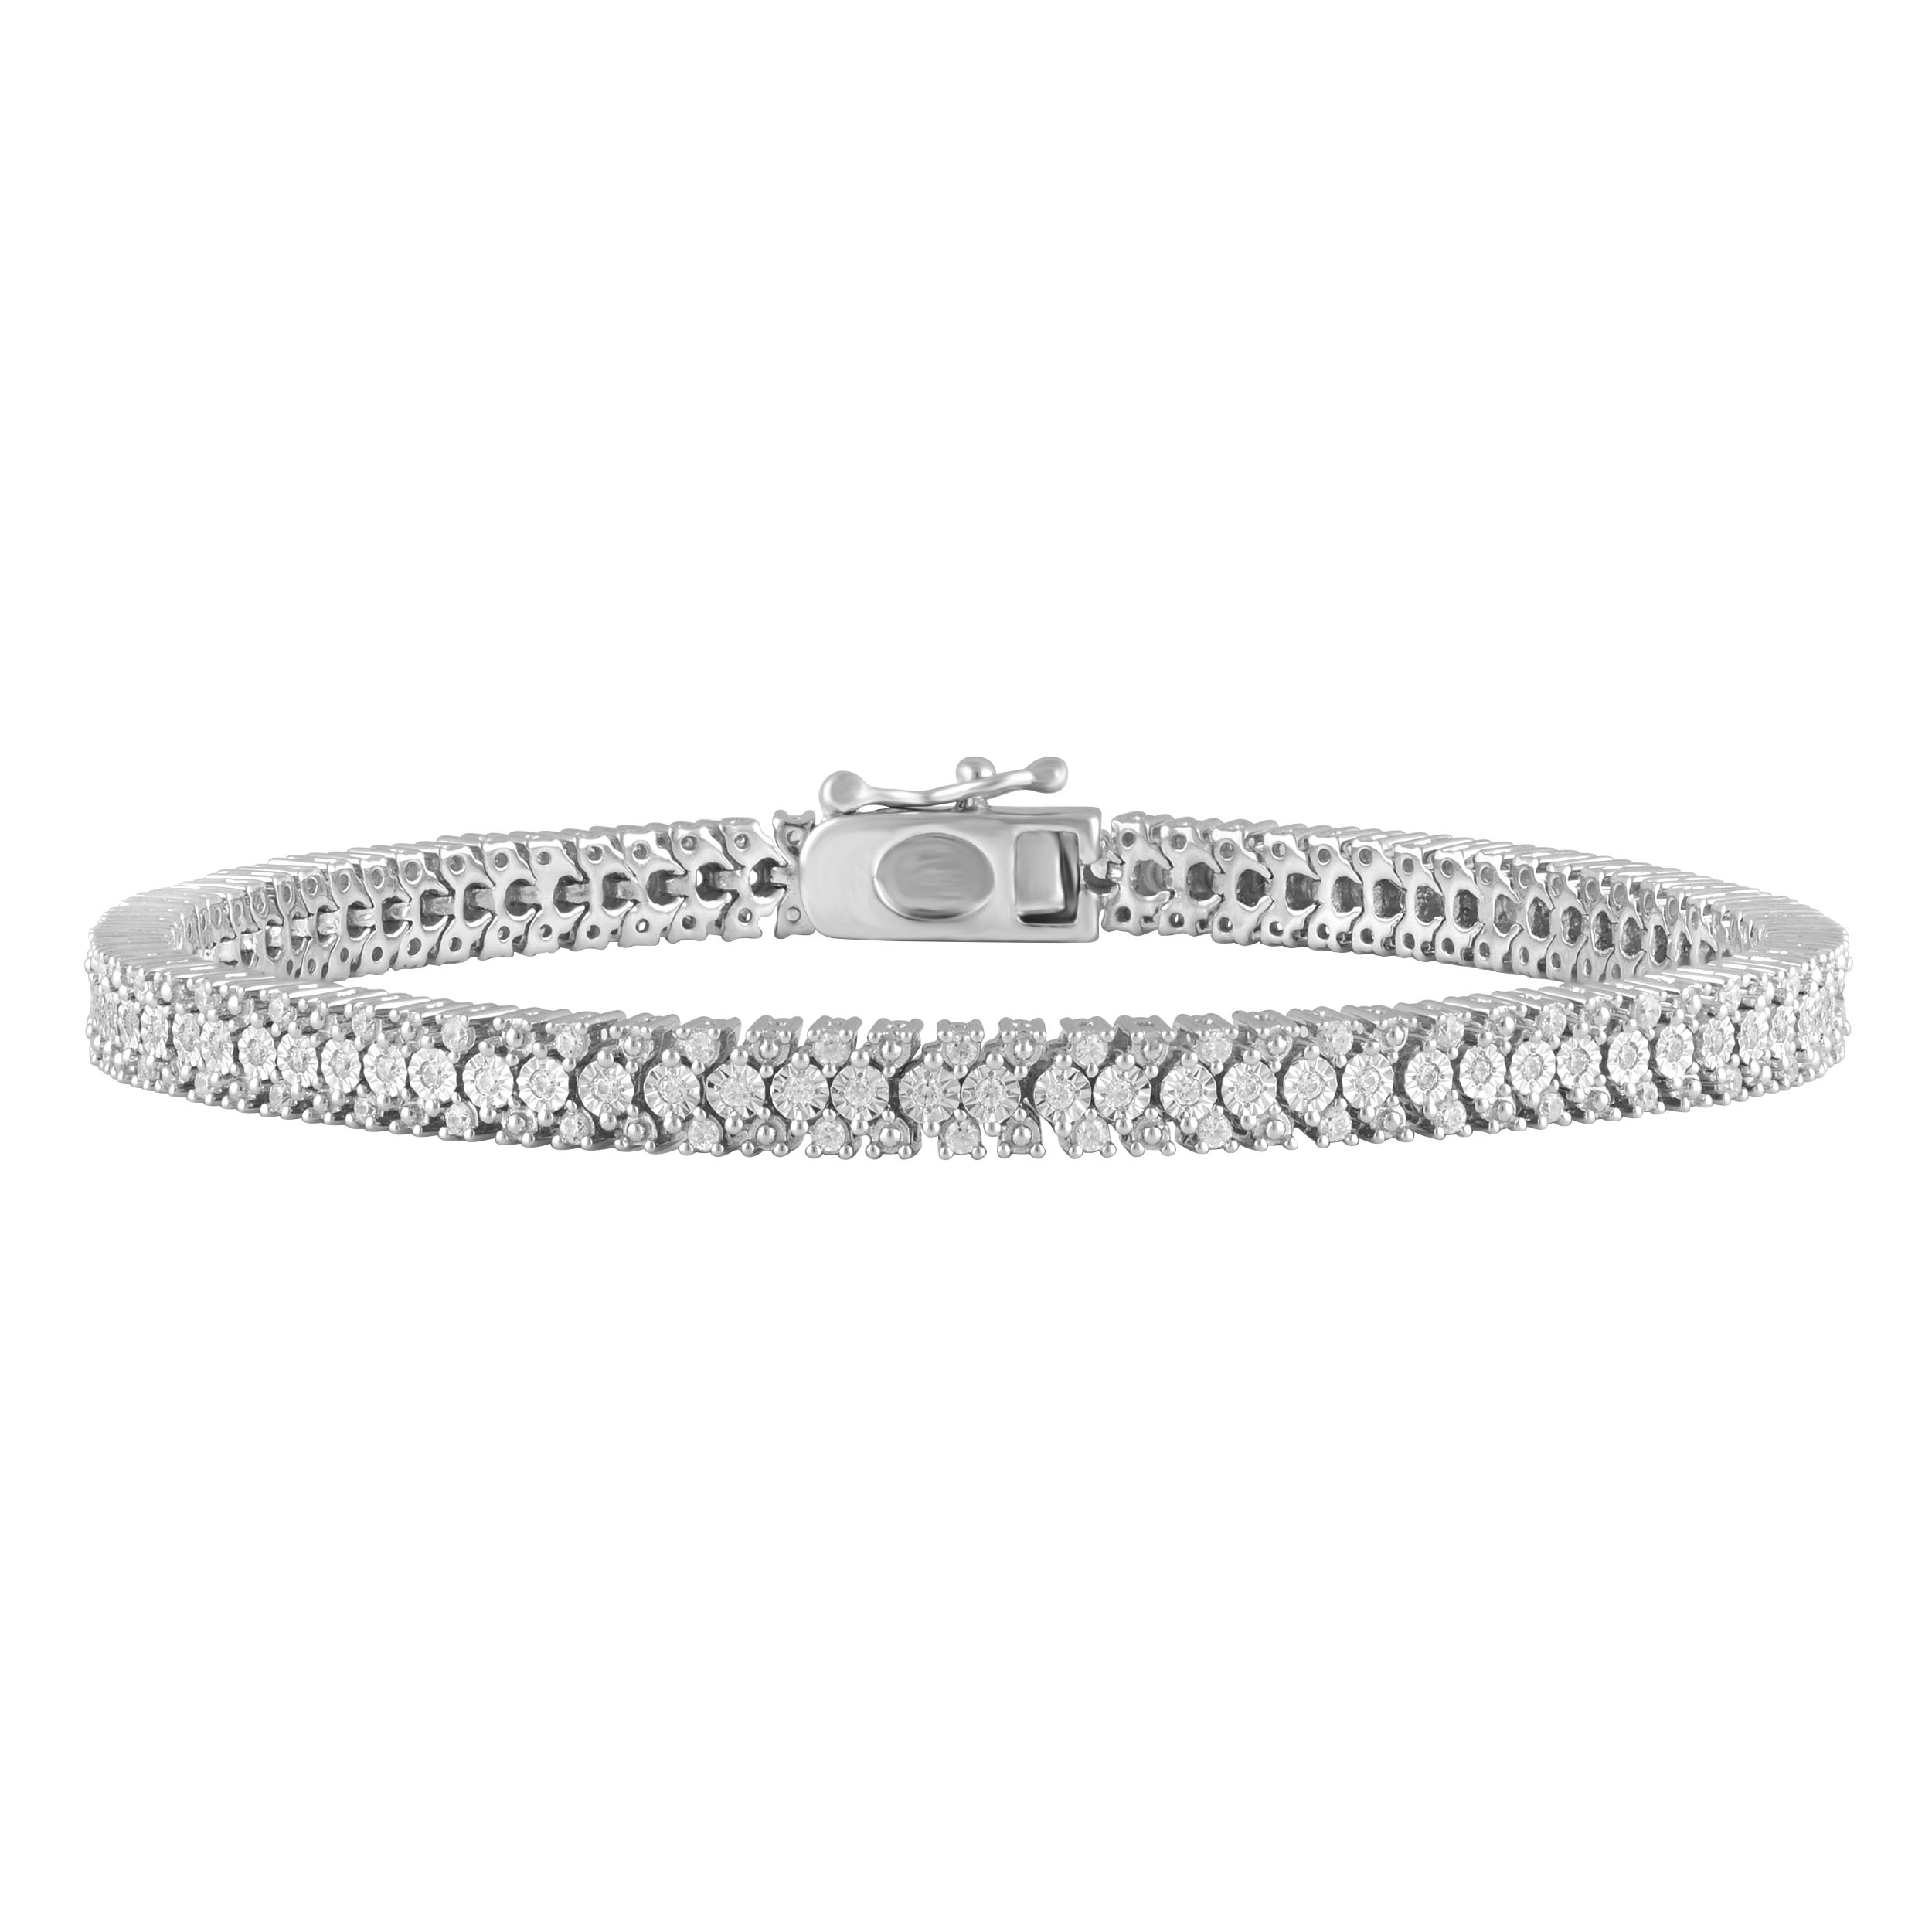 Sterling Silver 1 Carat Diamond Bracelet with 167 Brilliant Cut Diamonds 18cm